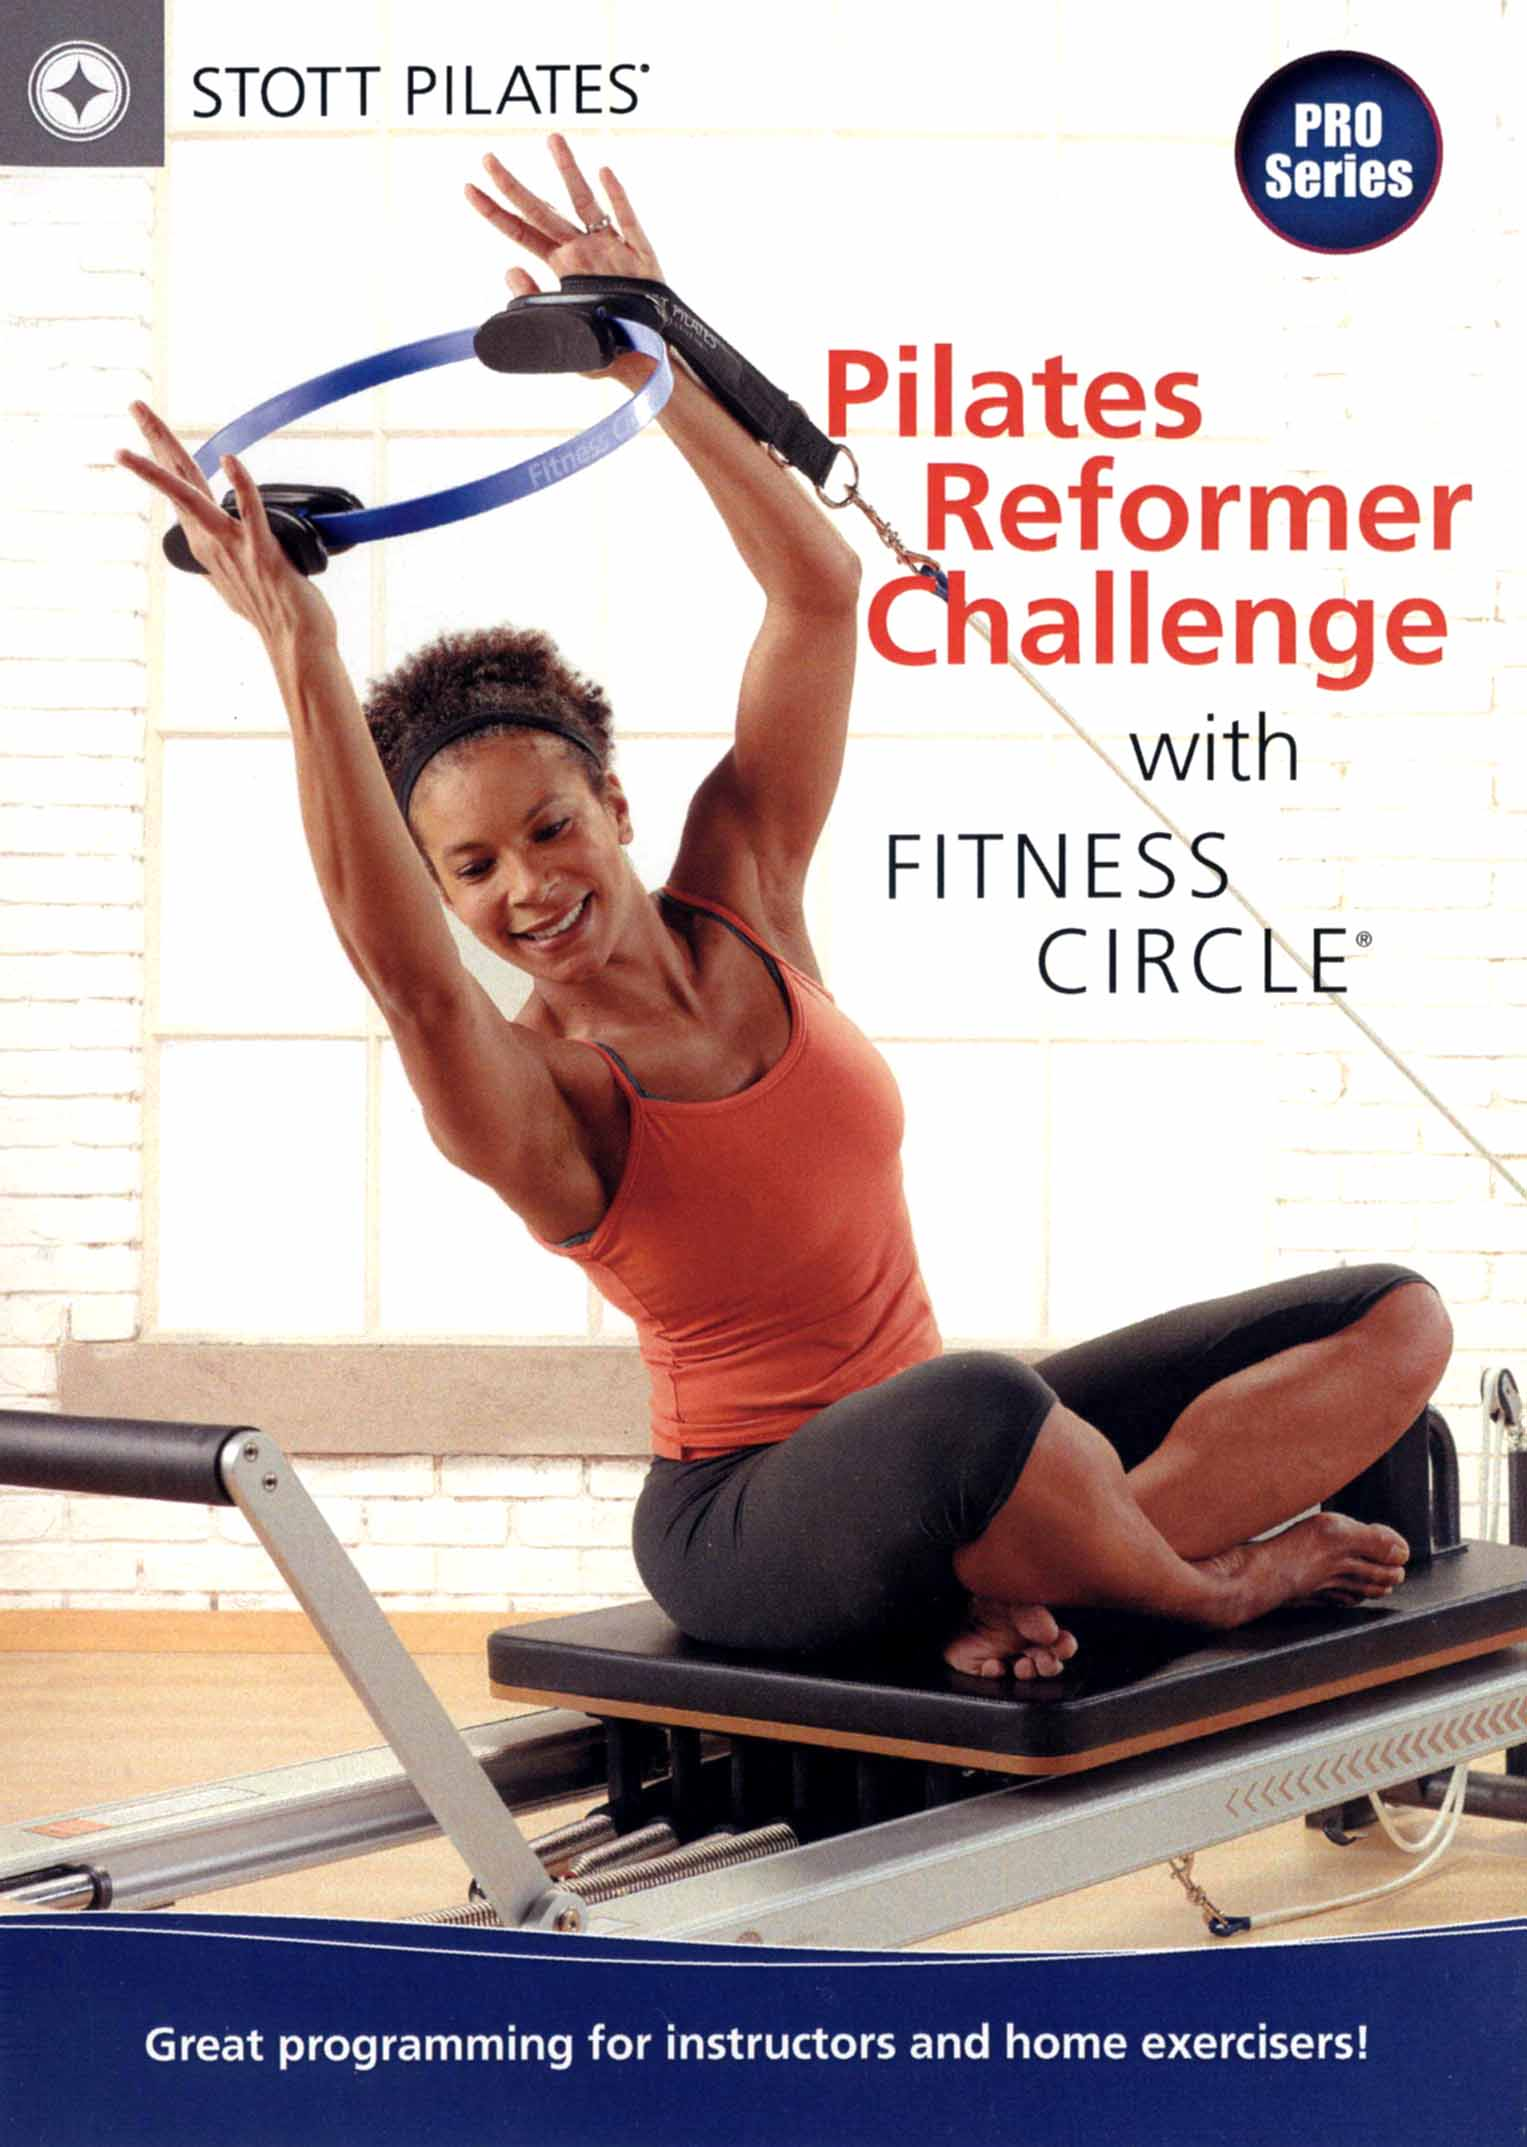 Stott Pilates: Pilates Reformer Challenge With Fitness Circle